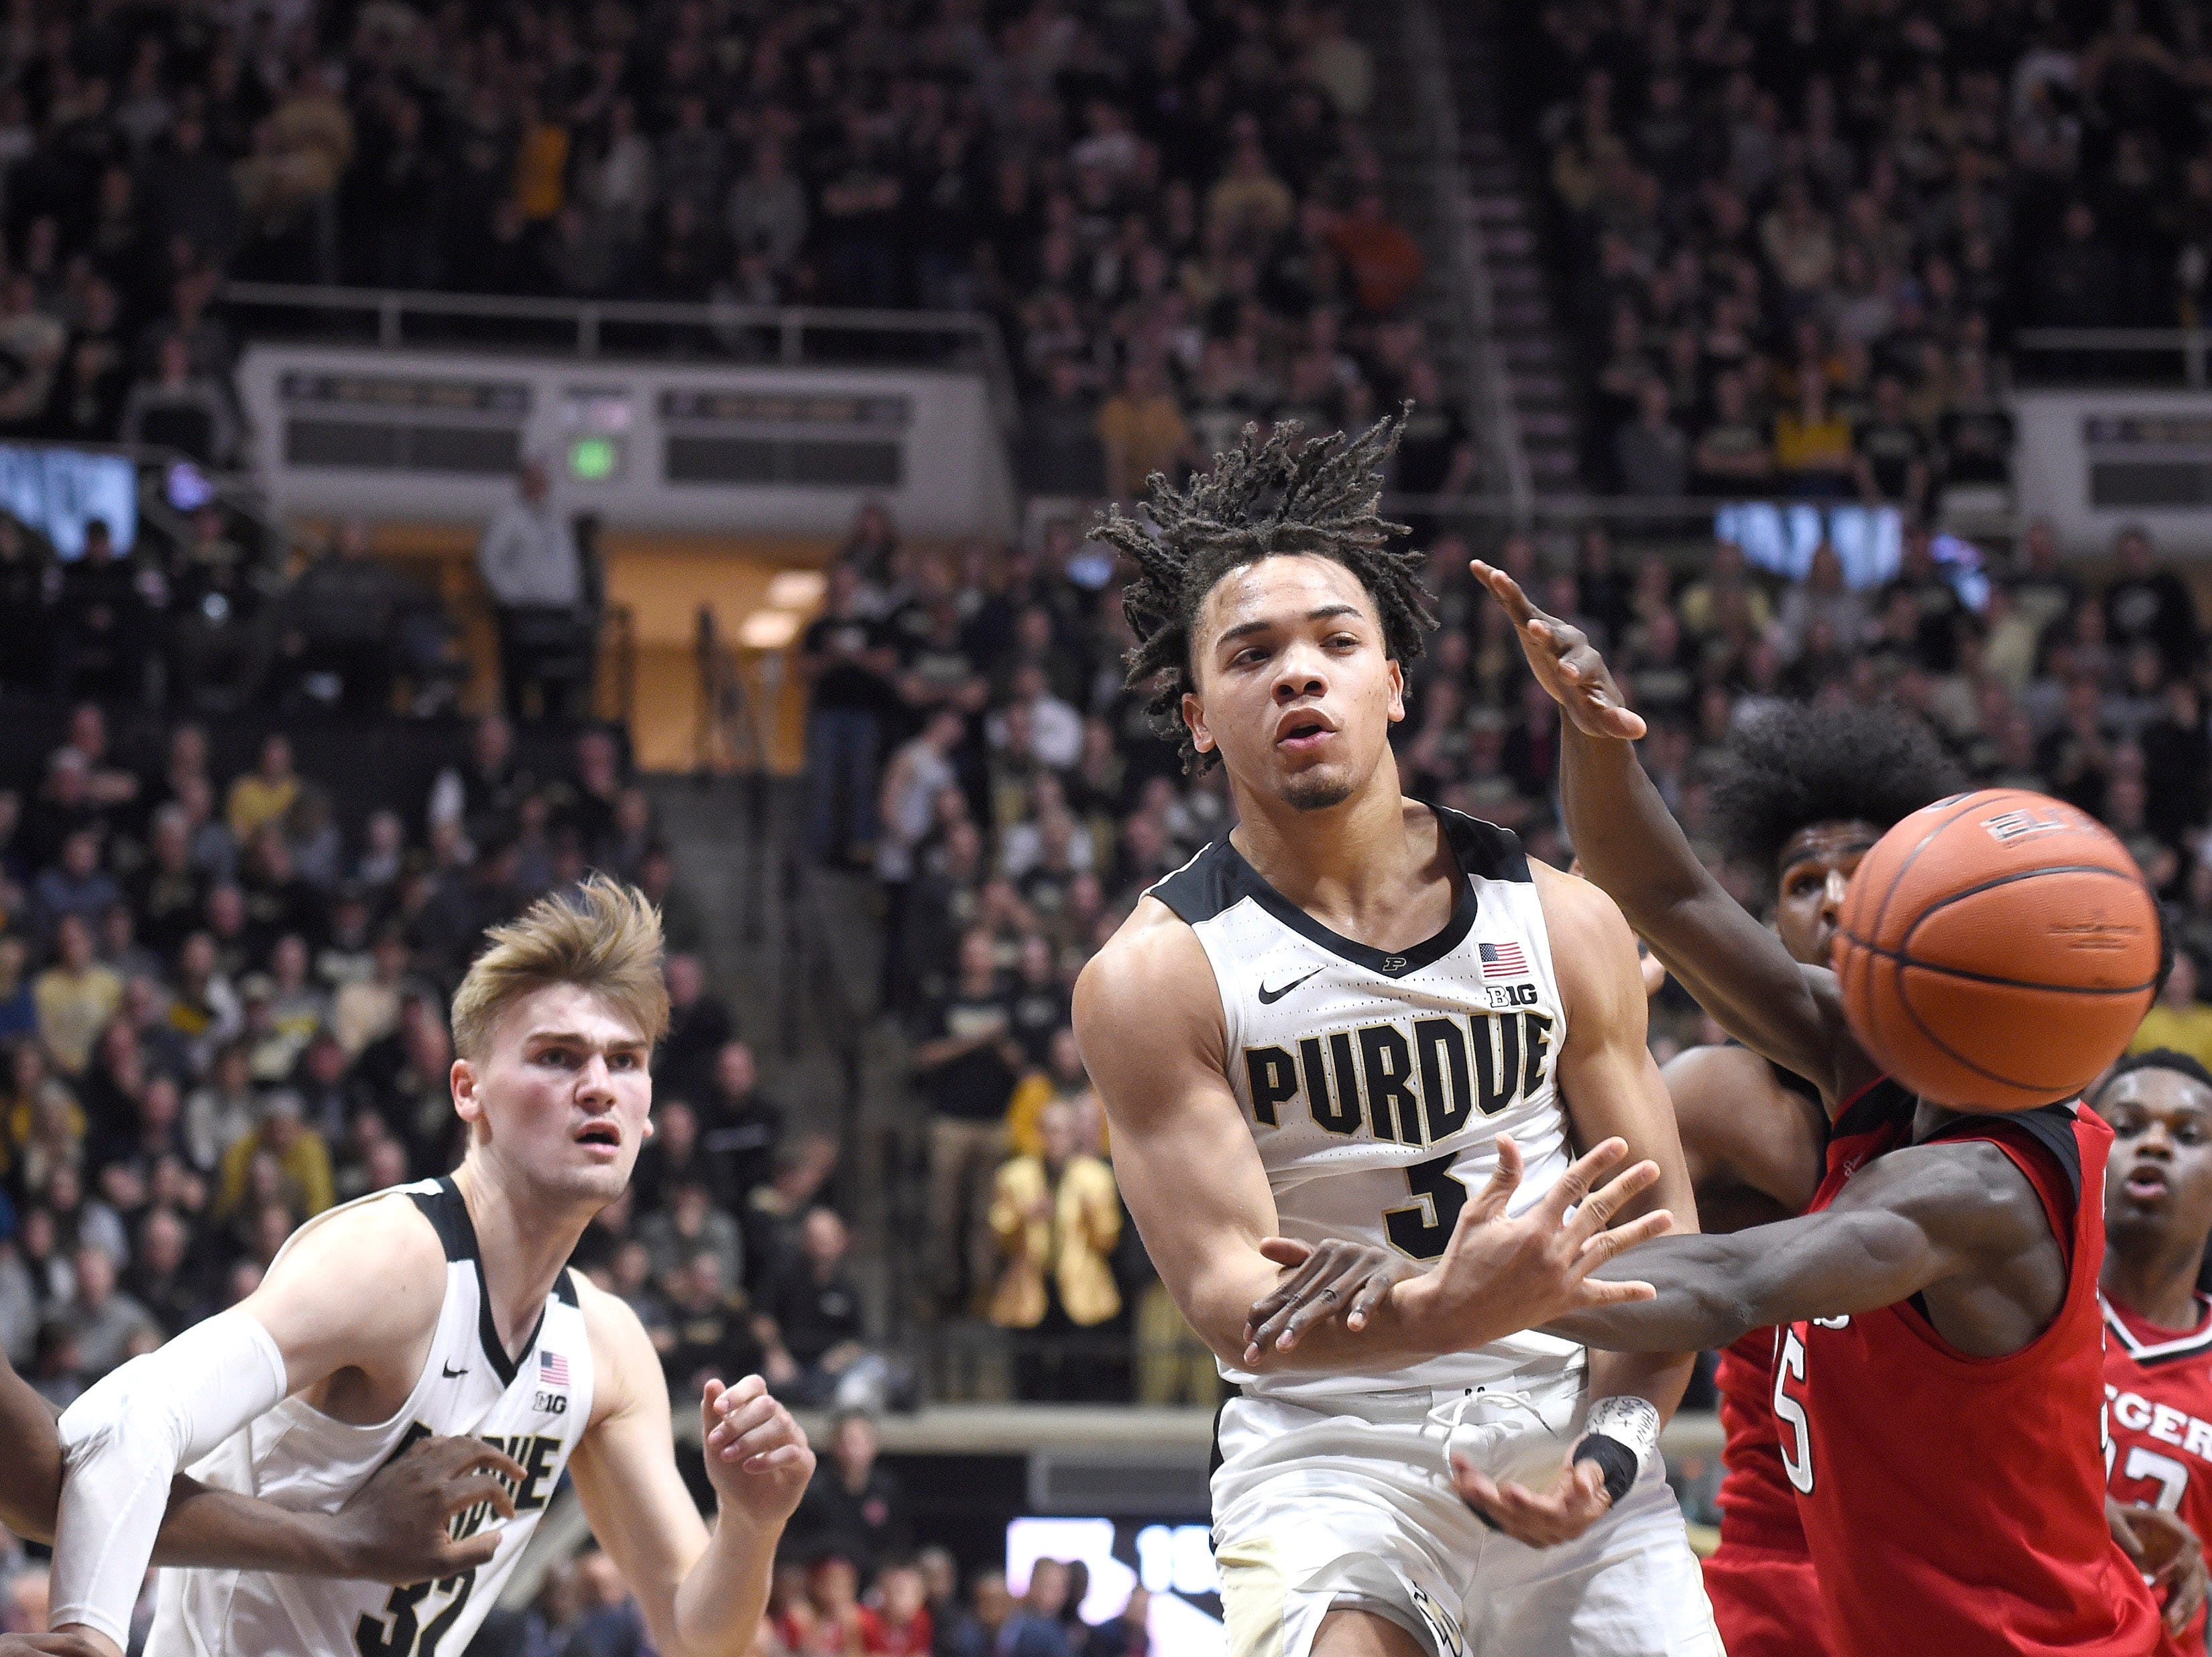 Jan 15, 2019; West Lafayette, IN, USA; Purdue Boilermakers guard Carsen Edwards (3) is fouled as he releases a pass in the 2nd half at Mackey Arena. Mandatory Credit: Sandra Dukes-USA TODAY Sports